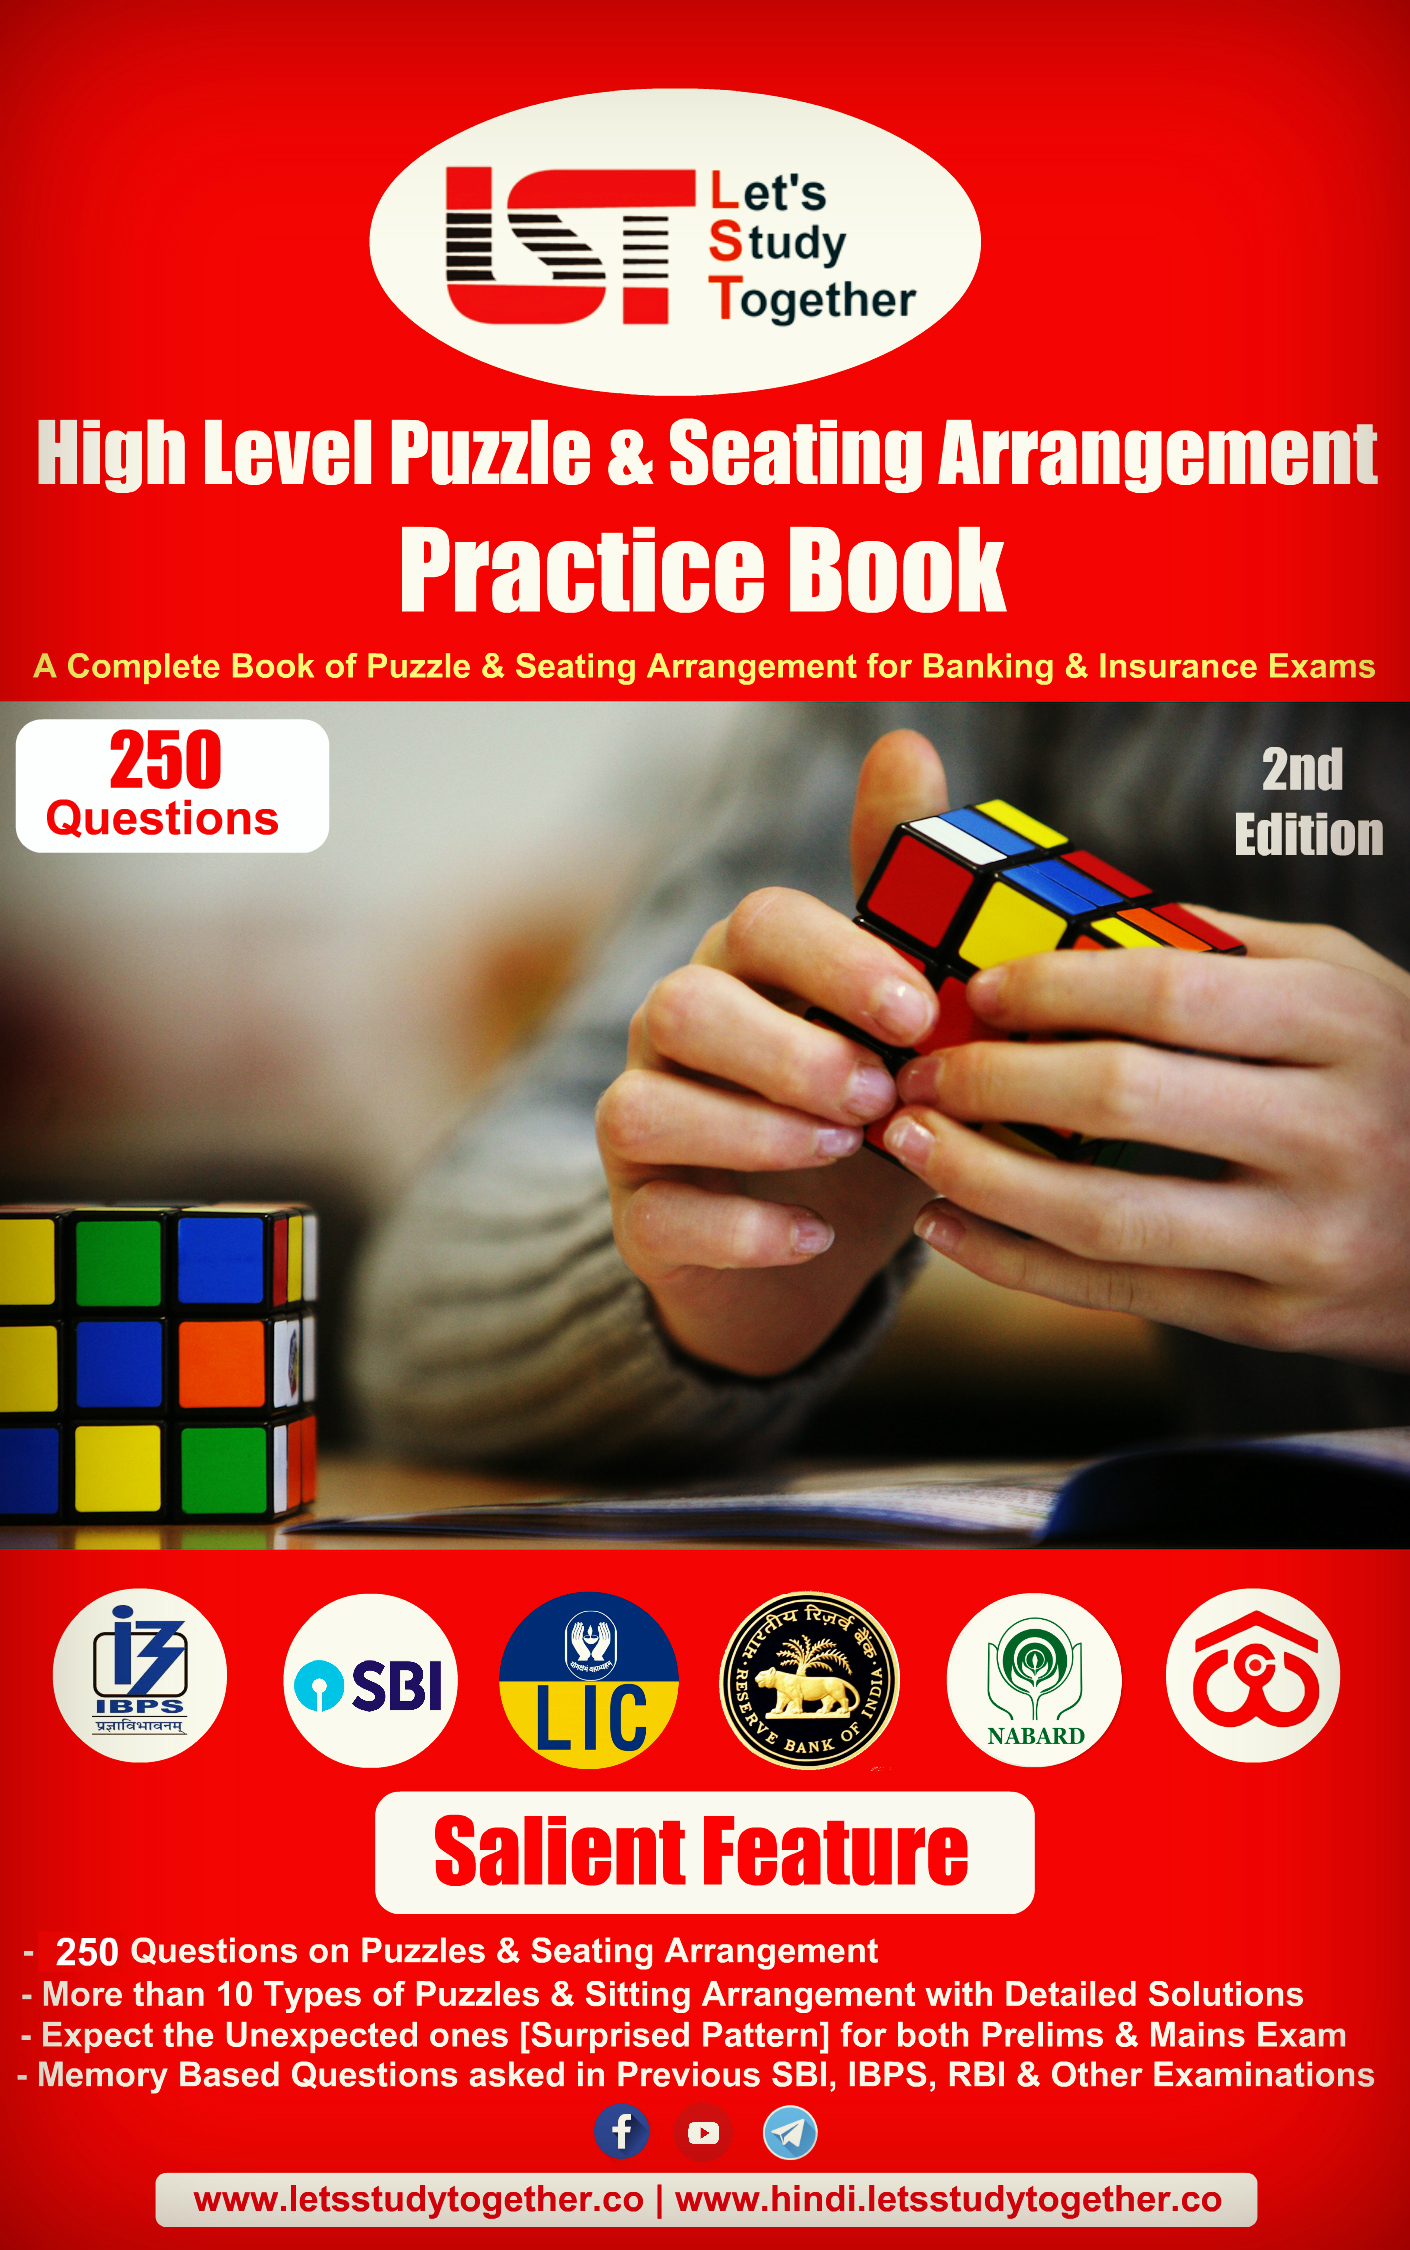 A Complete Book of Puzzle and Seating Arrangement